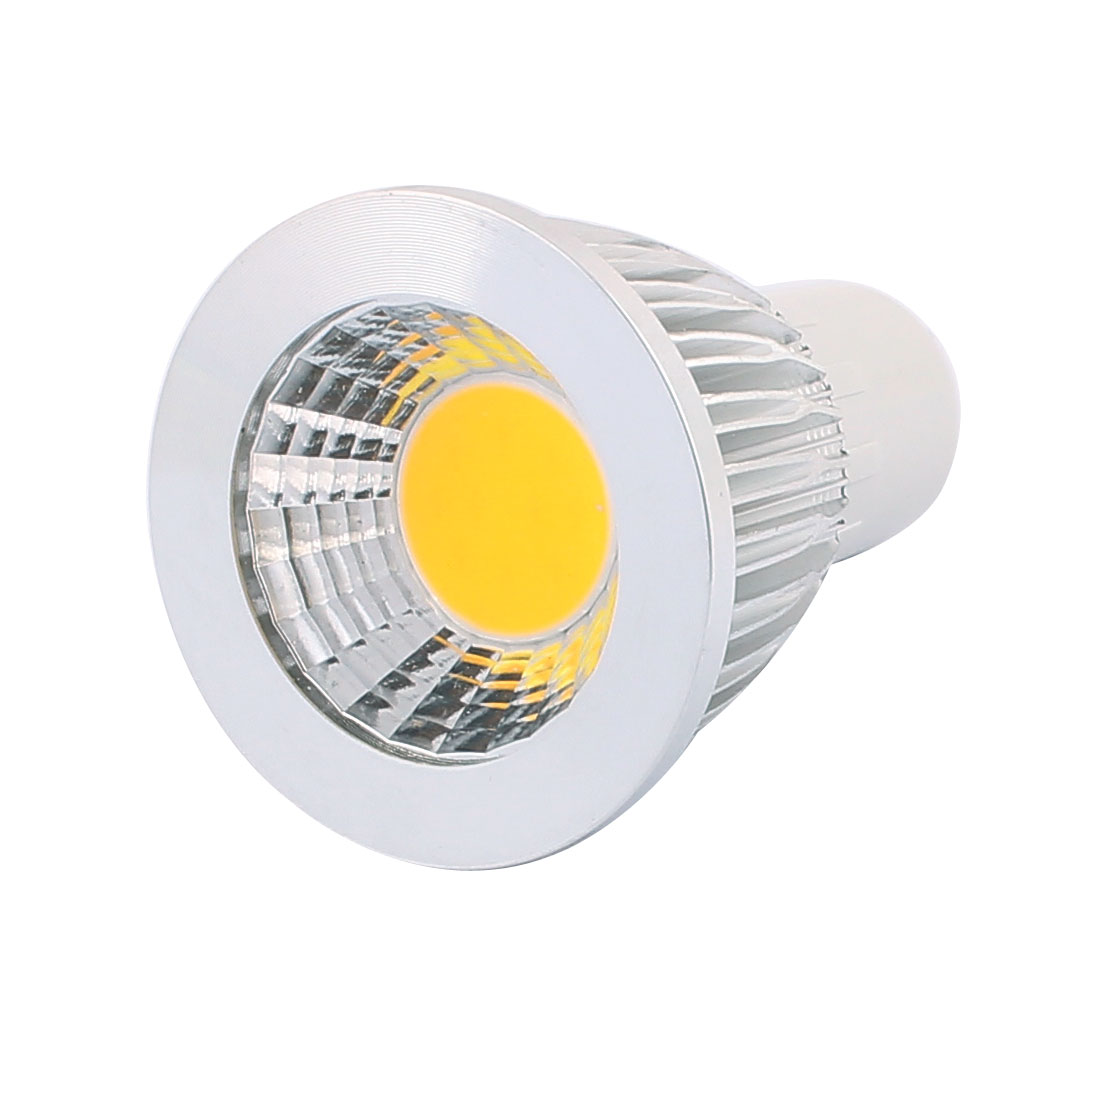 AC85-265V 5W Bright GU5.3 COB LED Spot Down Light Lamp Energy Saving Pure White